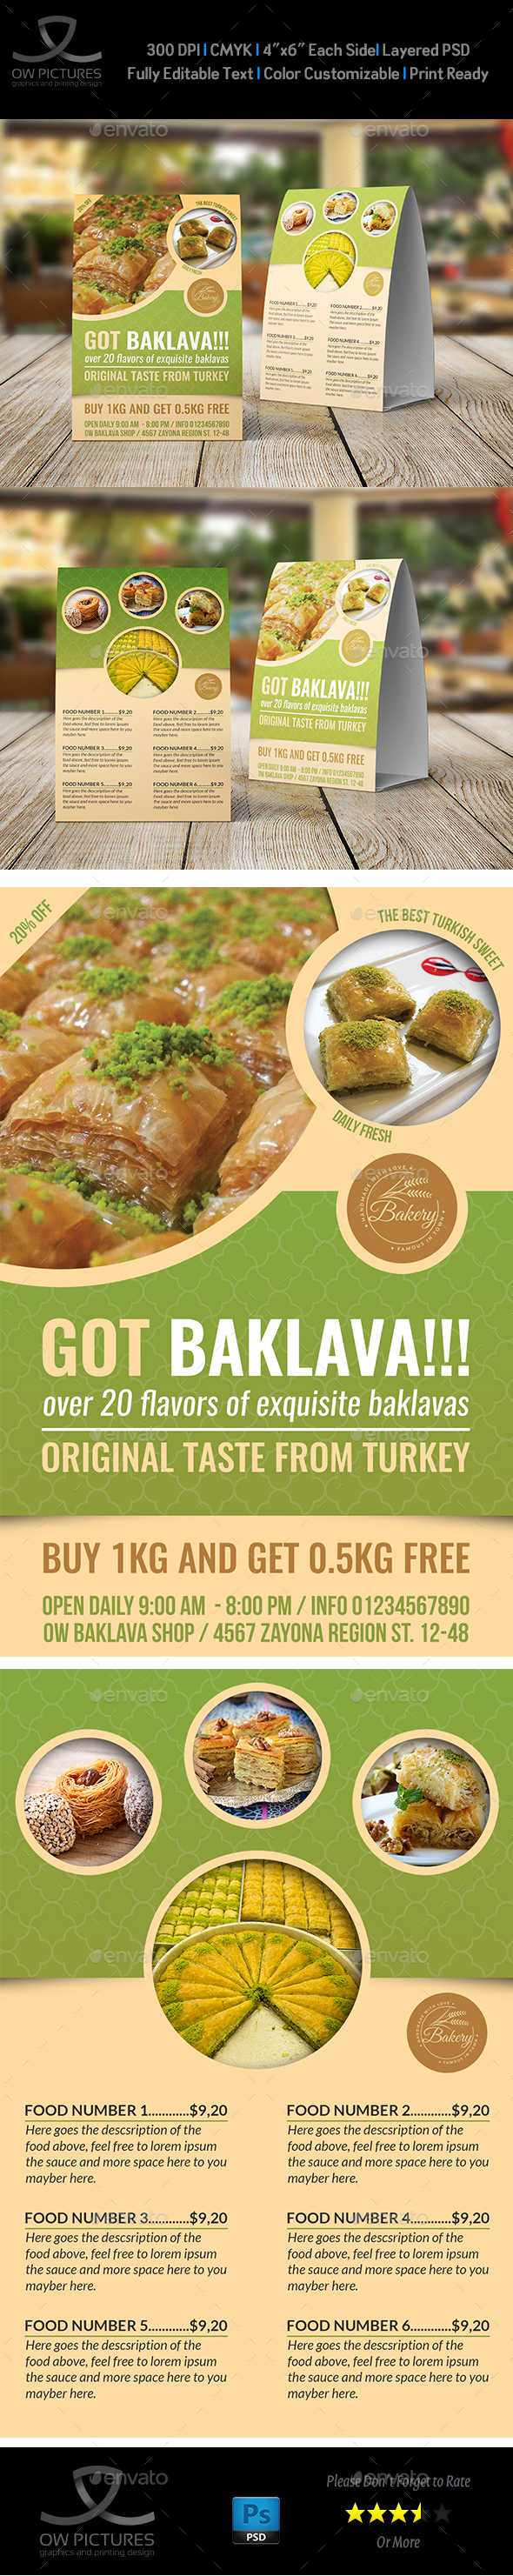 Baklava Table Tent Template - Food Menus Print Templates